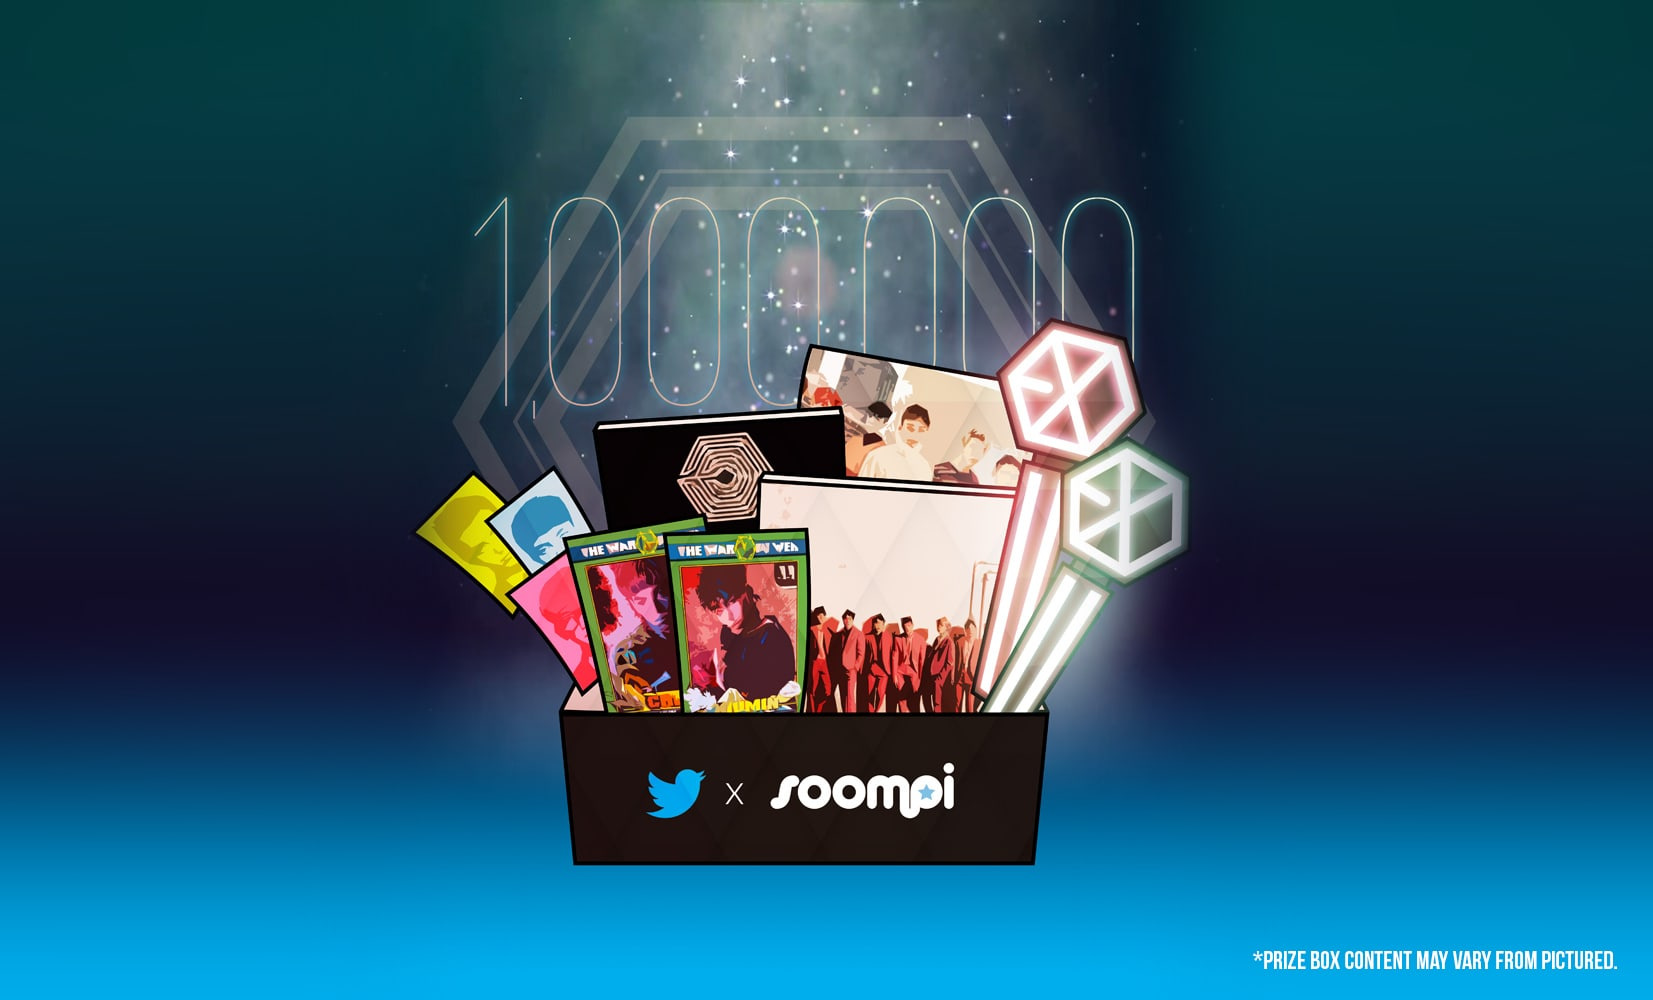 Soompi and Twitter Launch Global Fan Art Competition To Celebrate EXOs One Million Followers Milestone